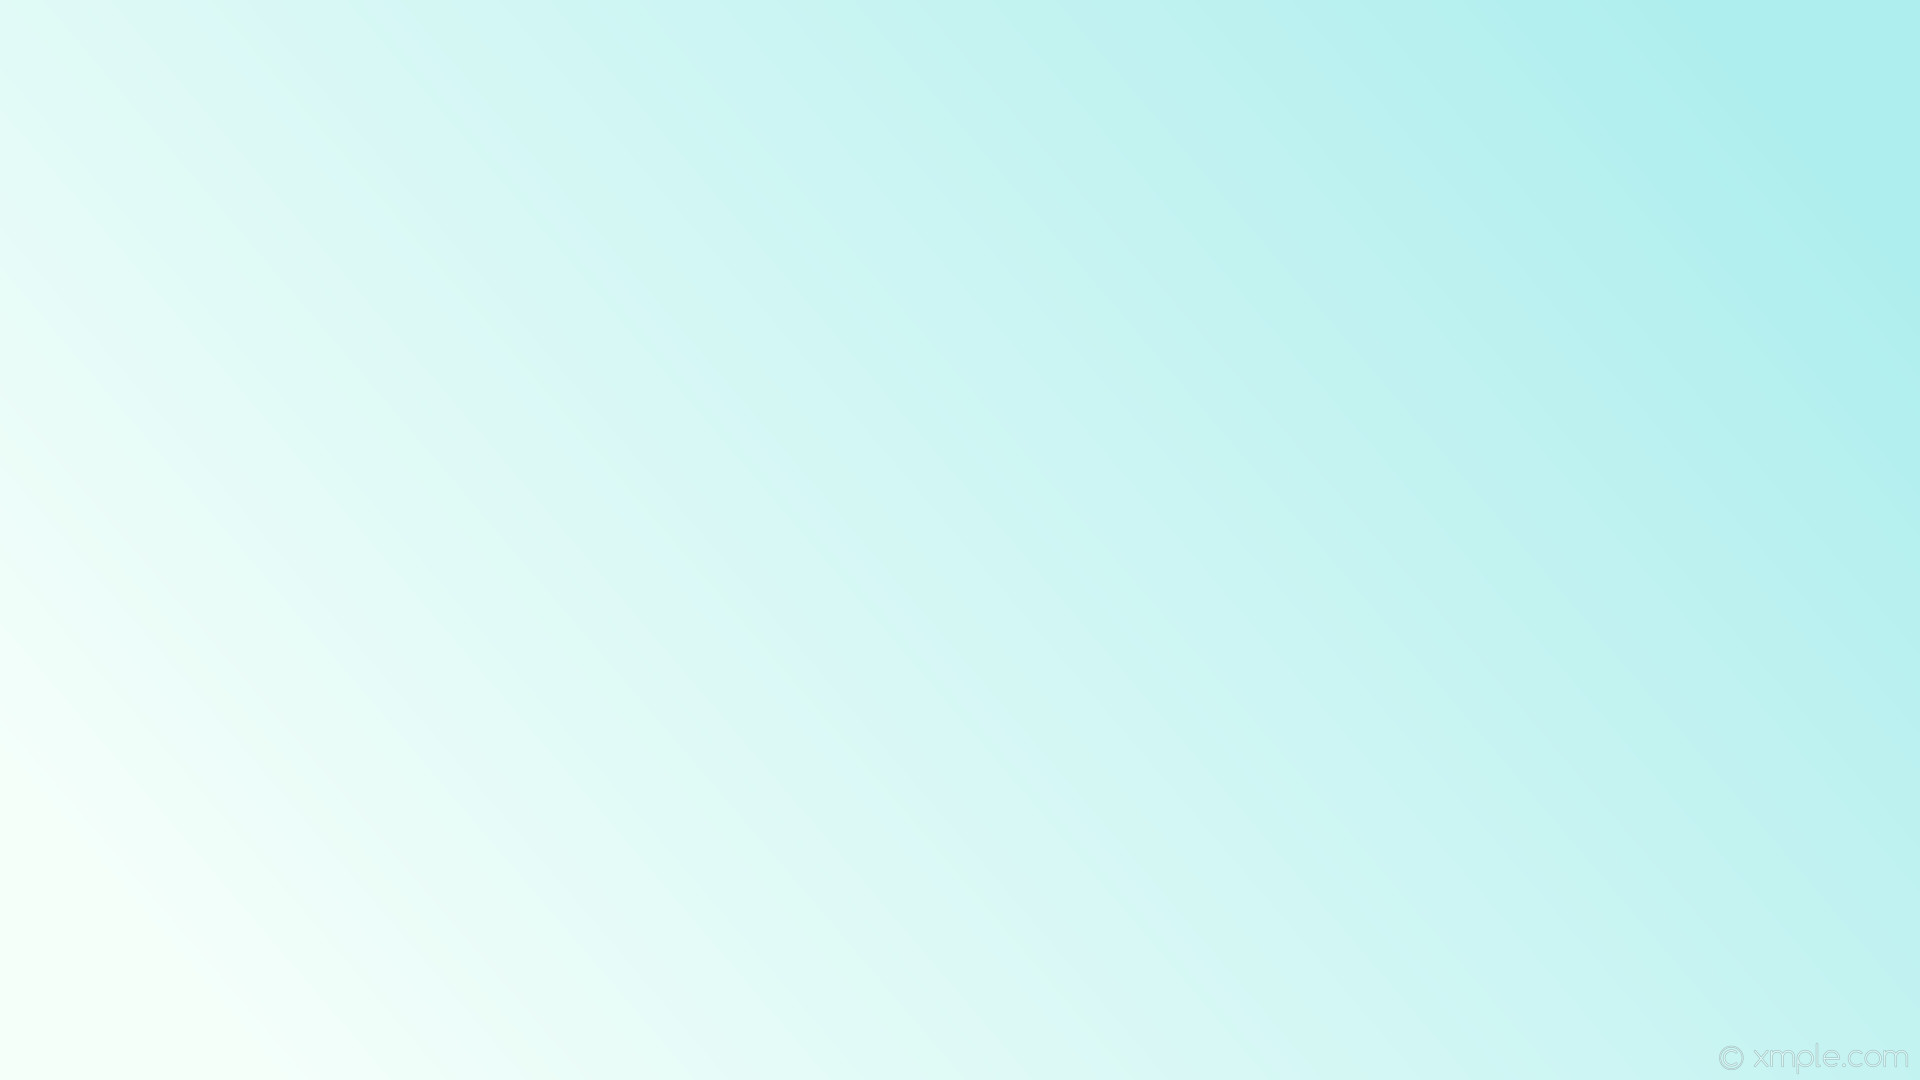 wallpaper linear gradient blue white mint cream pale turquoise #f5fffa  #afeeee 195°